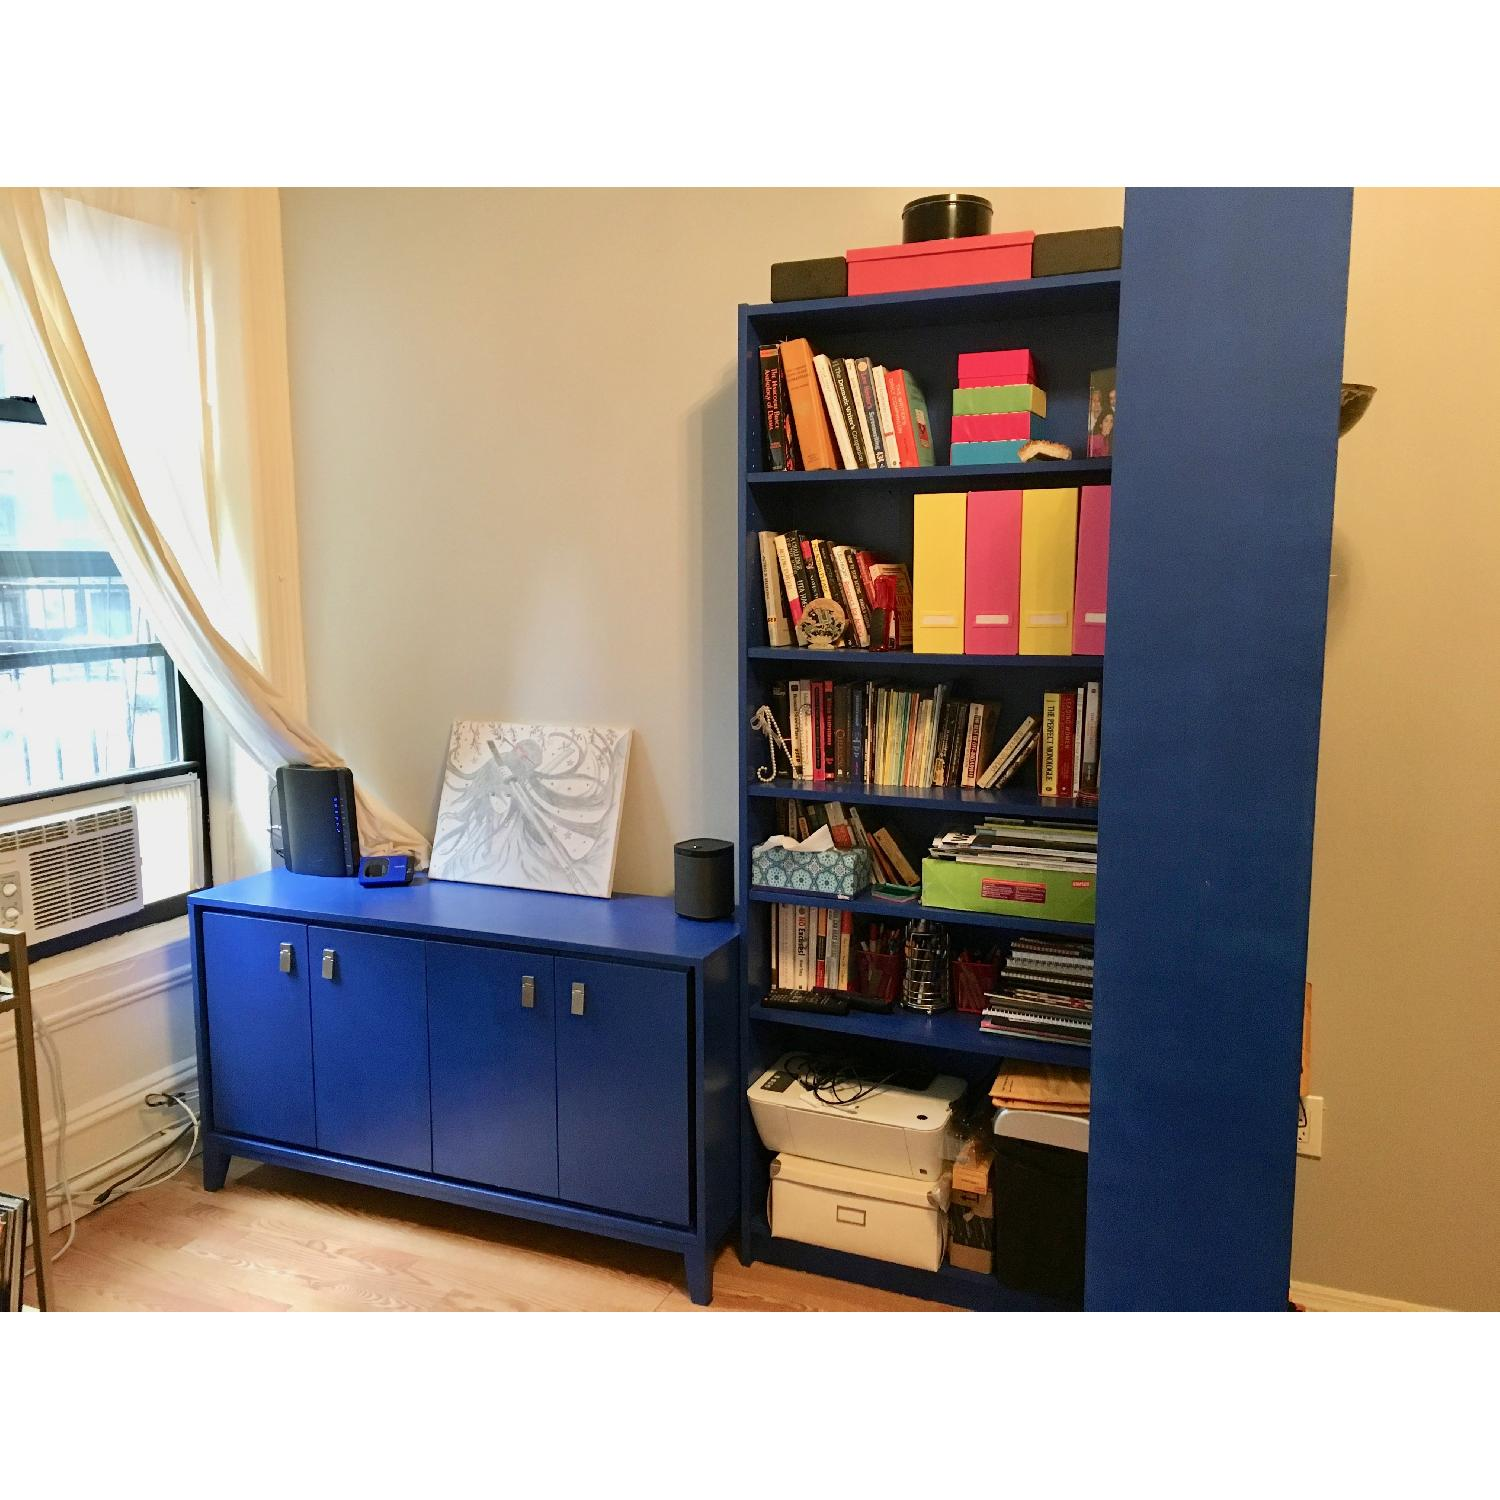 Ikea Billy Hand Painted Bookcases - image-0